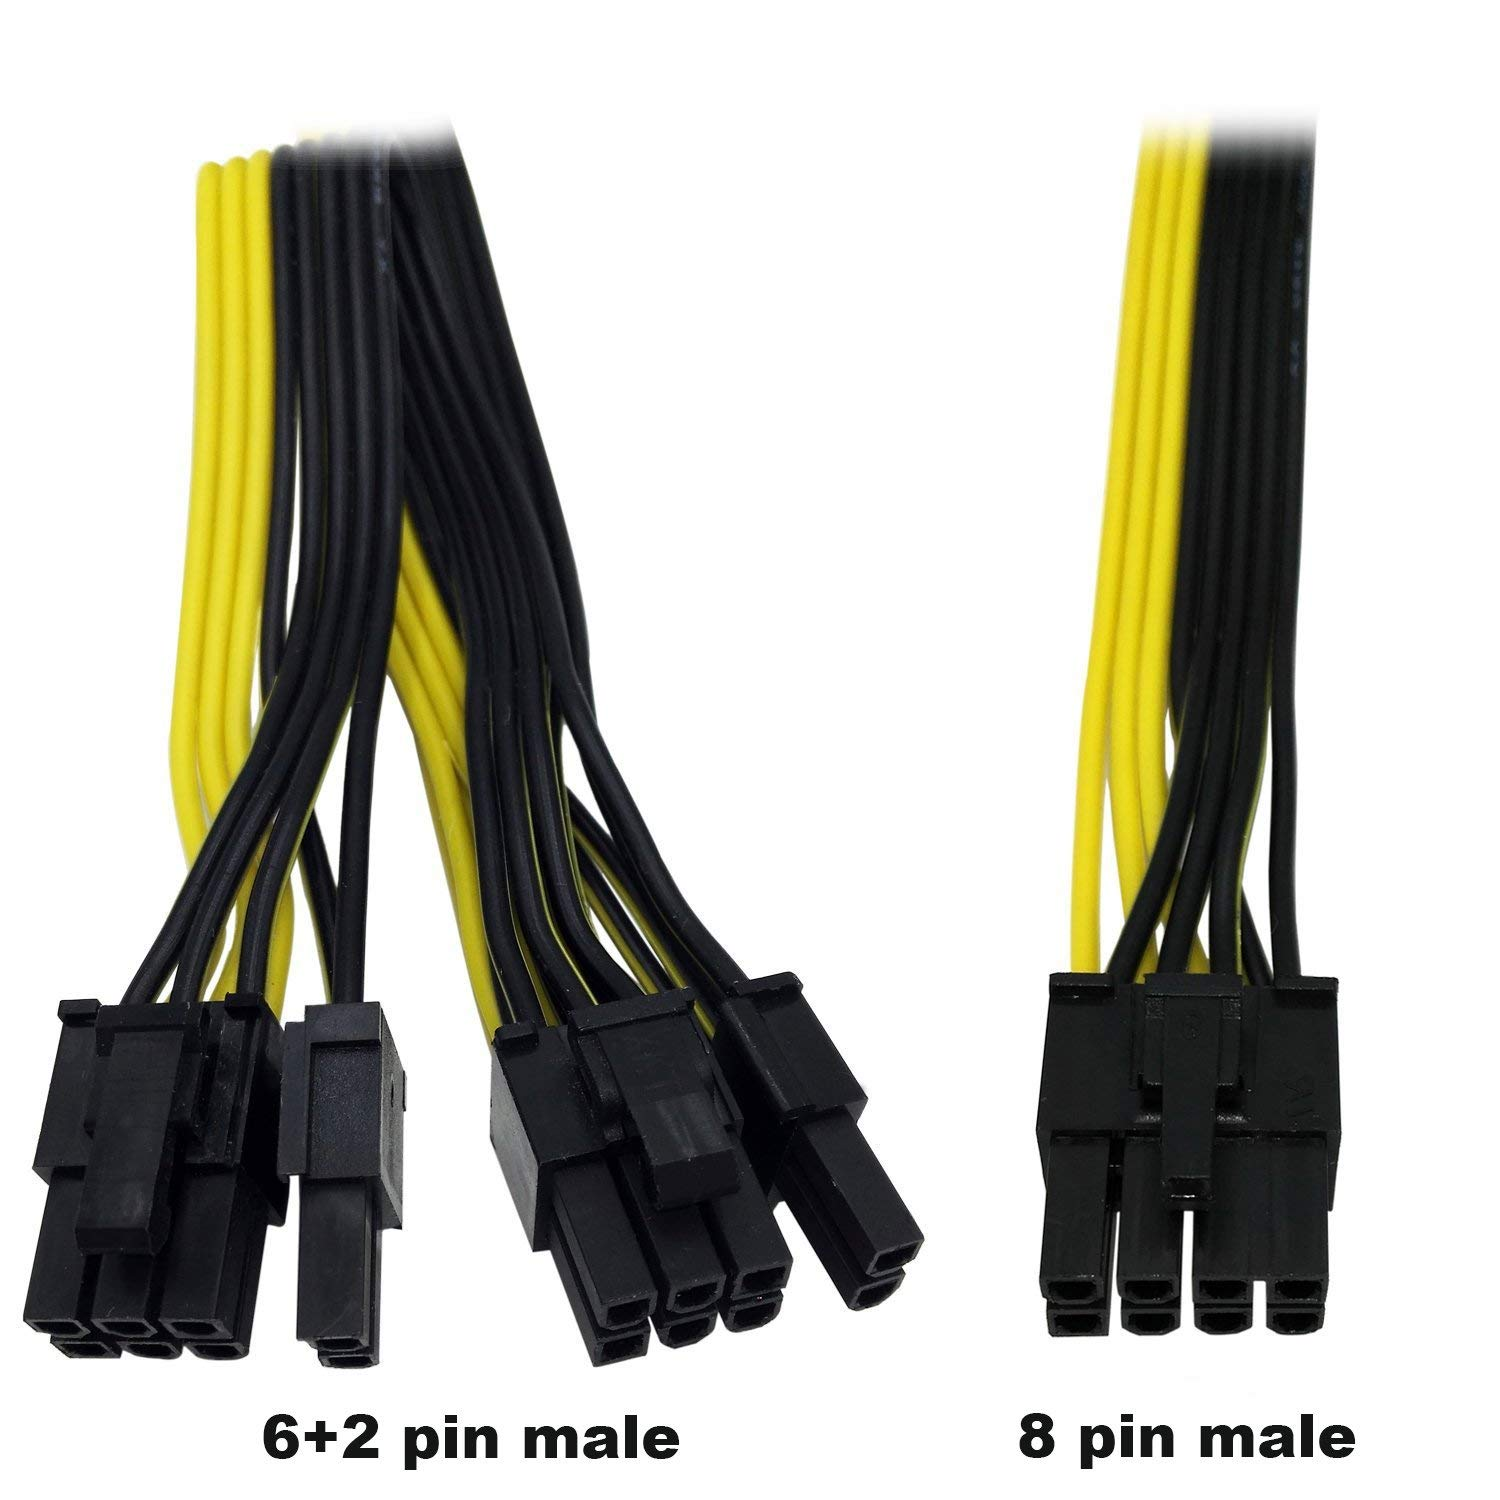 6+2 male PCI Express Power Adapter Cable Modular Power Supply Cable for Graphics Video Card 8 pin splitter 24+8inches TeamProfitcom PCIE 8 Pin male to Dual 8 Pin